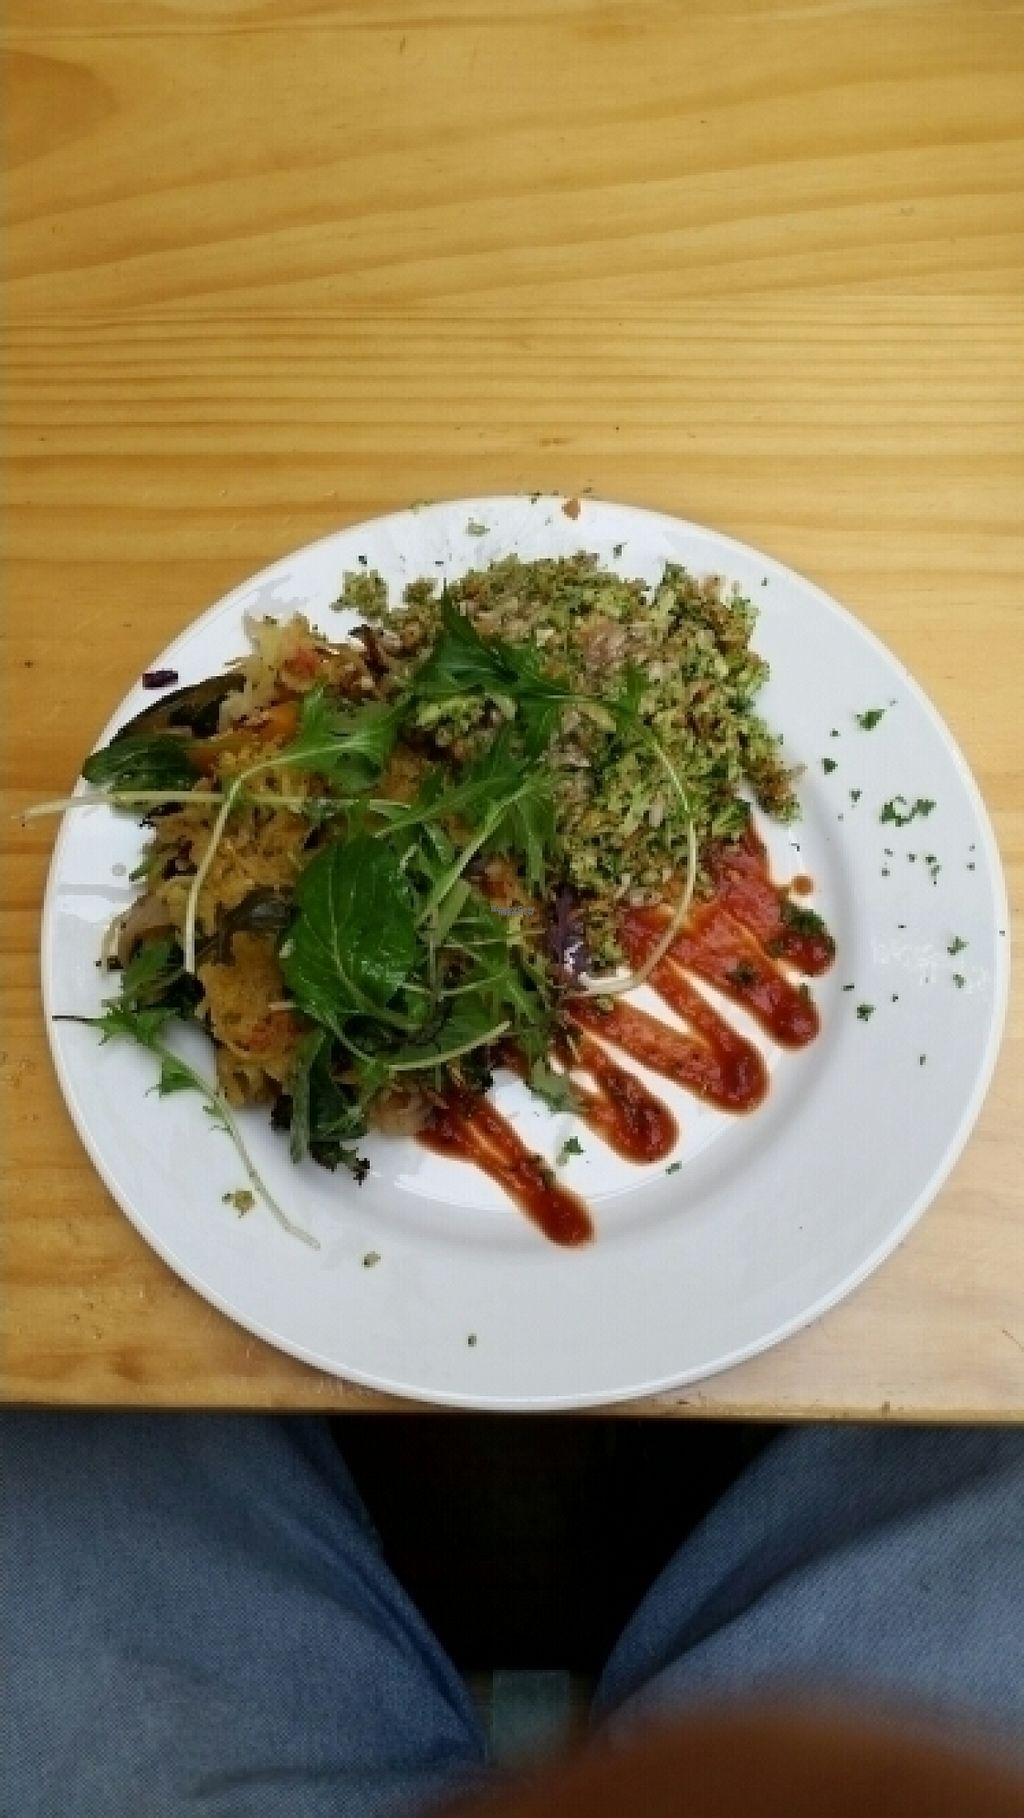 """Photo of Cafe Royale  by <a href=""""/members/profile/AndyTheVWDude"""">AndyTheVWDude</a> <br/>Delicious Potato & Vege Stack with Raw Broccoli Salad ~Aug '16 <br/> August 6, 2016  - <a href='/contact/abuse/image/51920/166352'>Report</a>"""